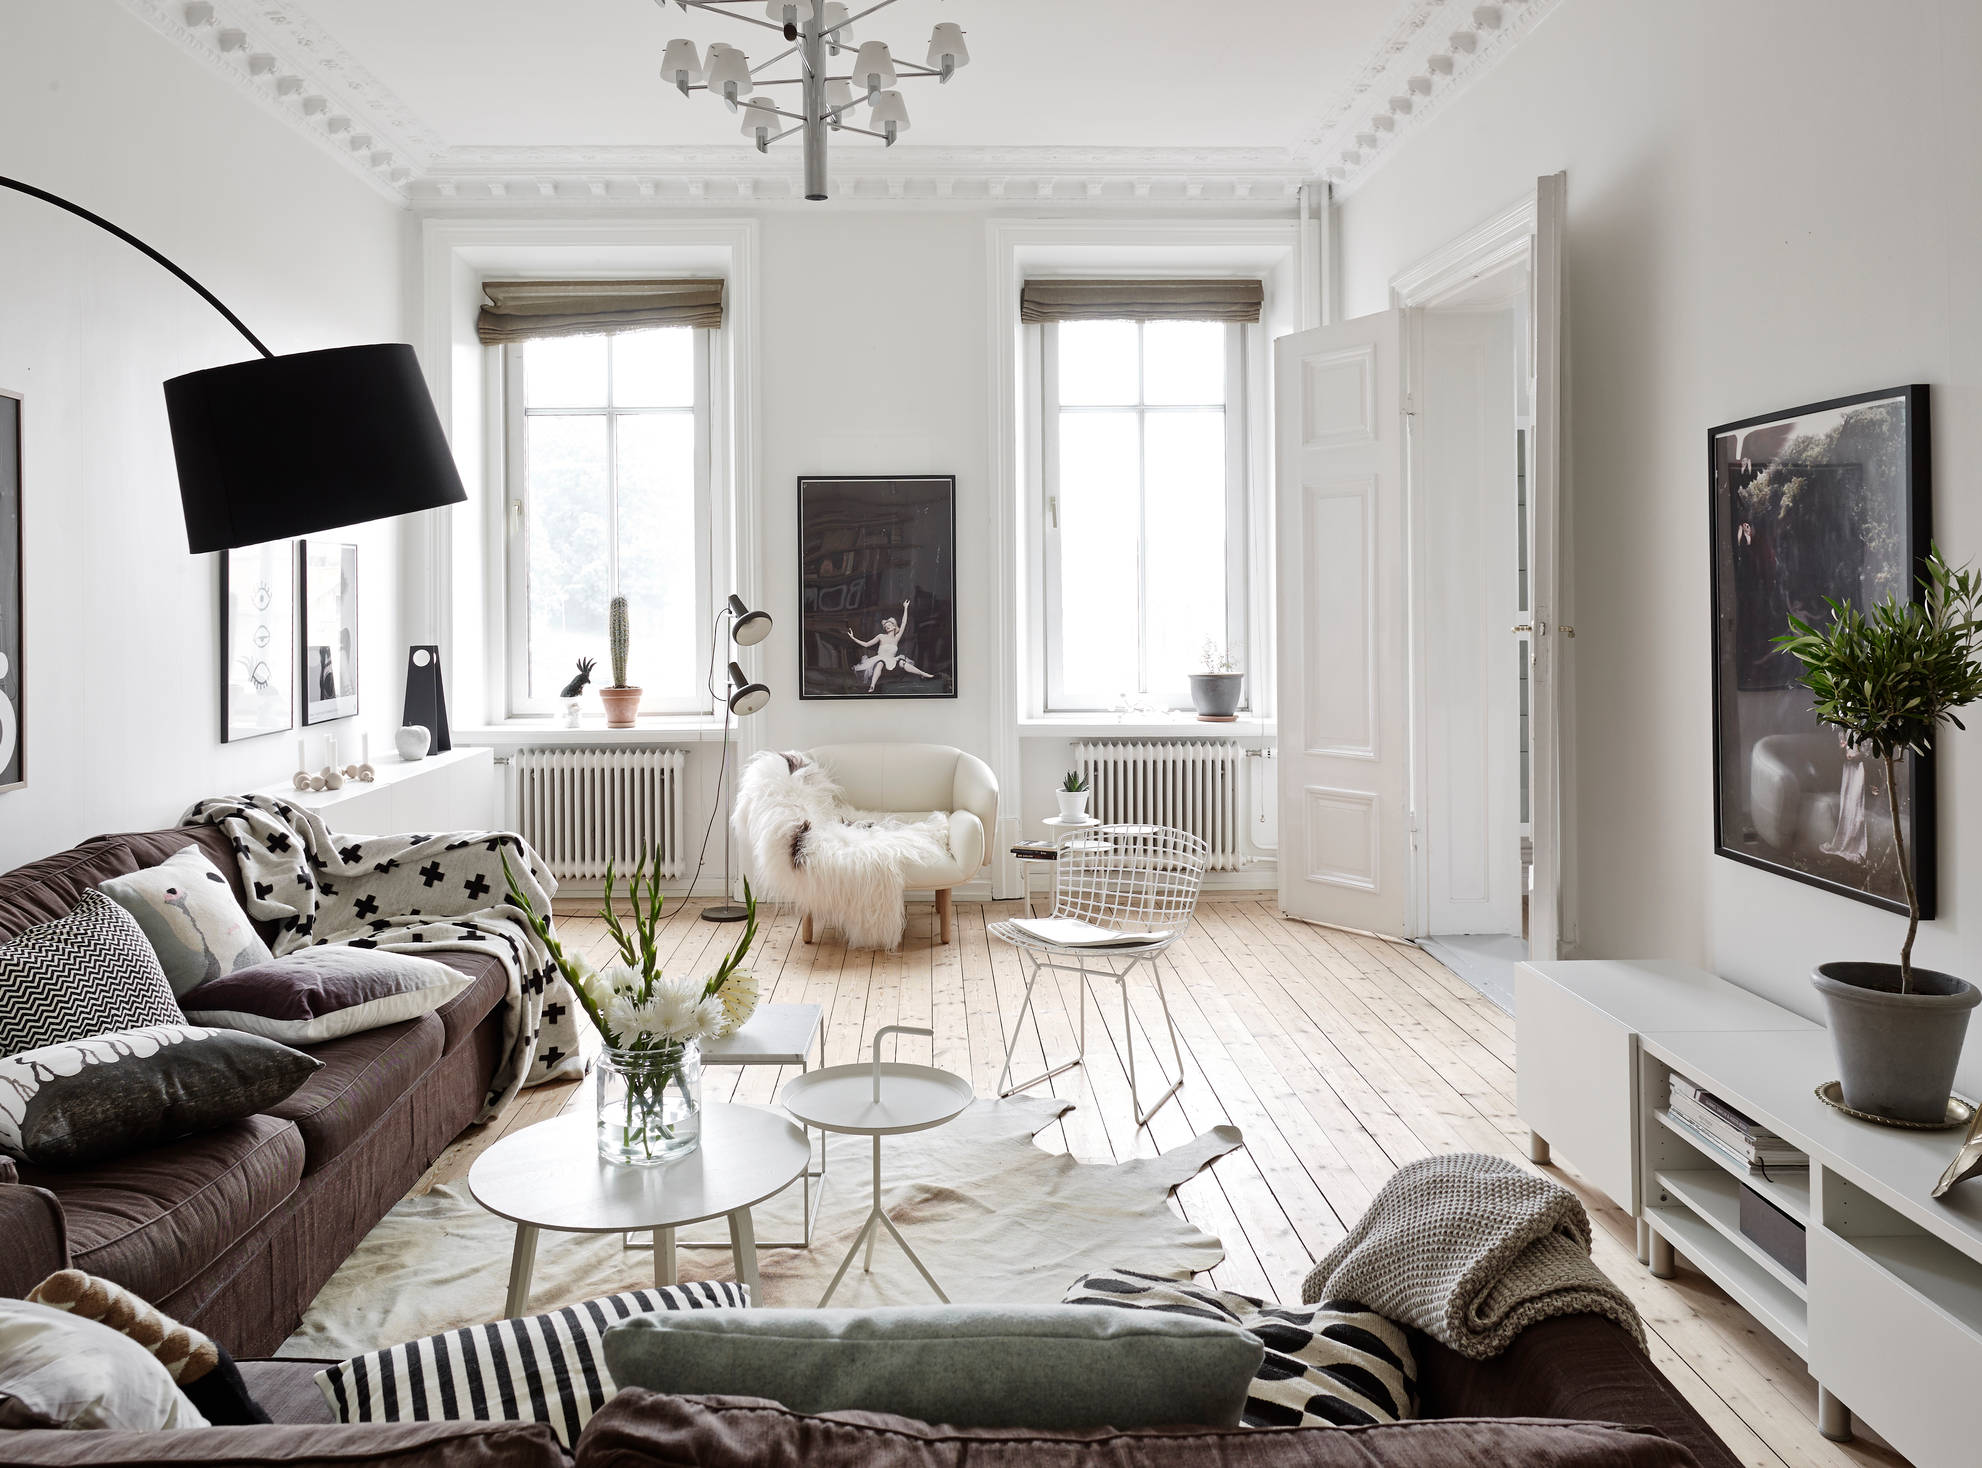 Ambiance cocooning planete deco a homes world for Wohnzimmer scandi style